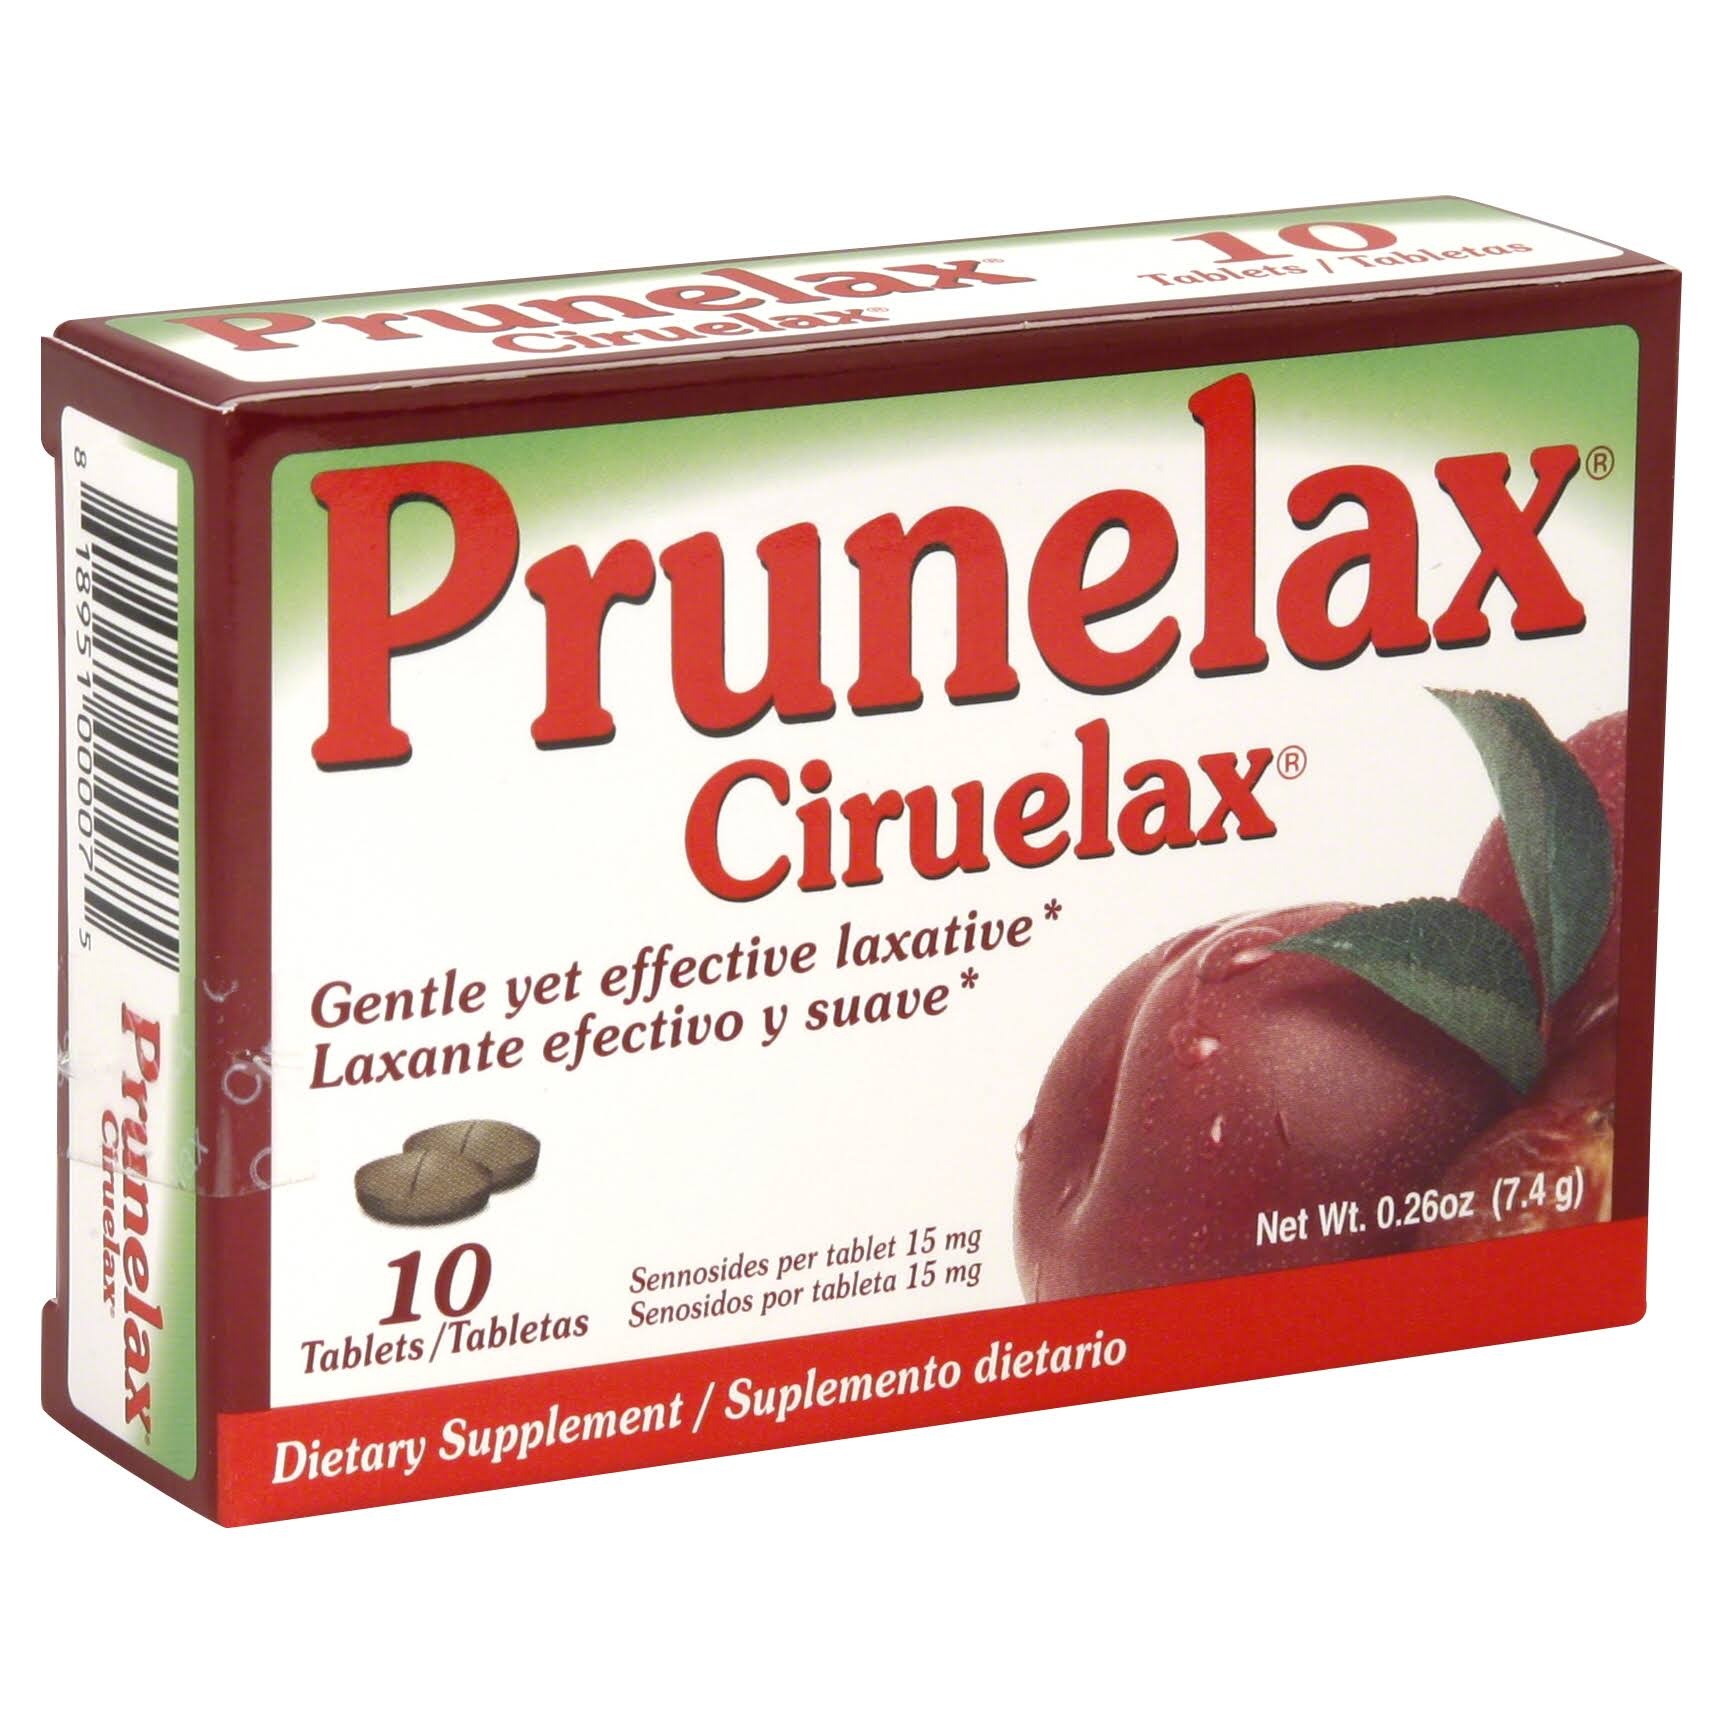 Prunelax Ciruelax Natural Laxative Senna and Dried Plum Supplement - 10 Tablets